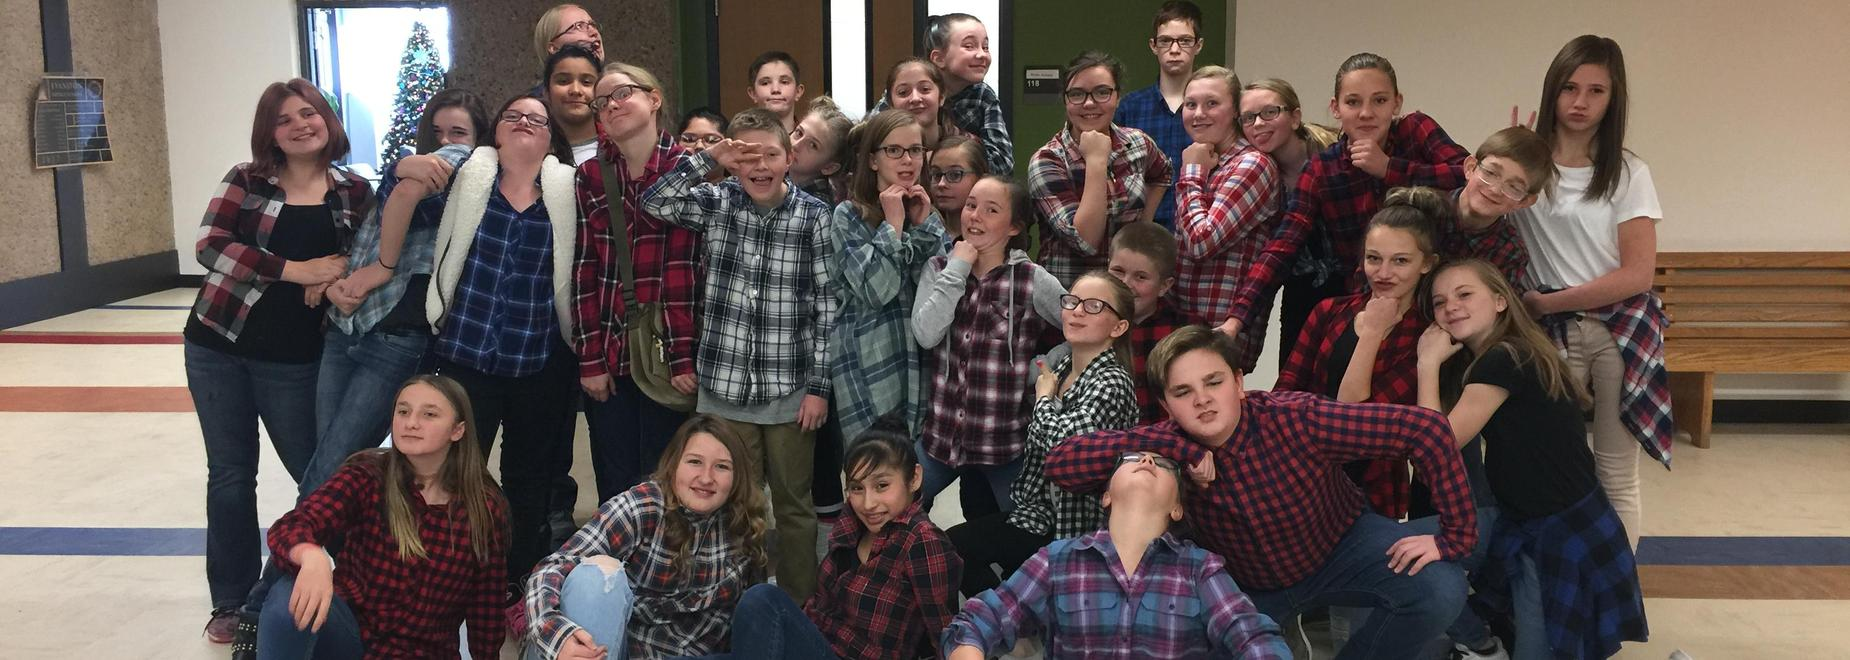 7th Grade wearing plaid doing crazy poses